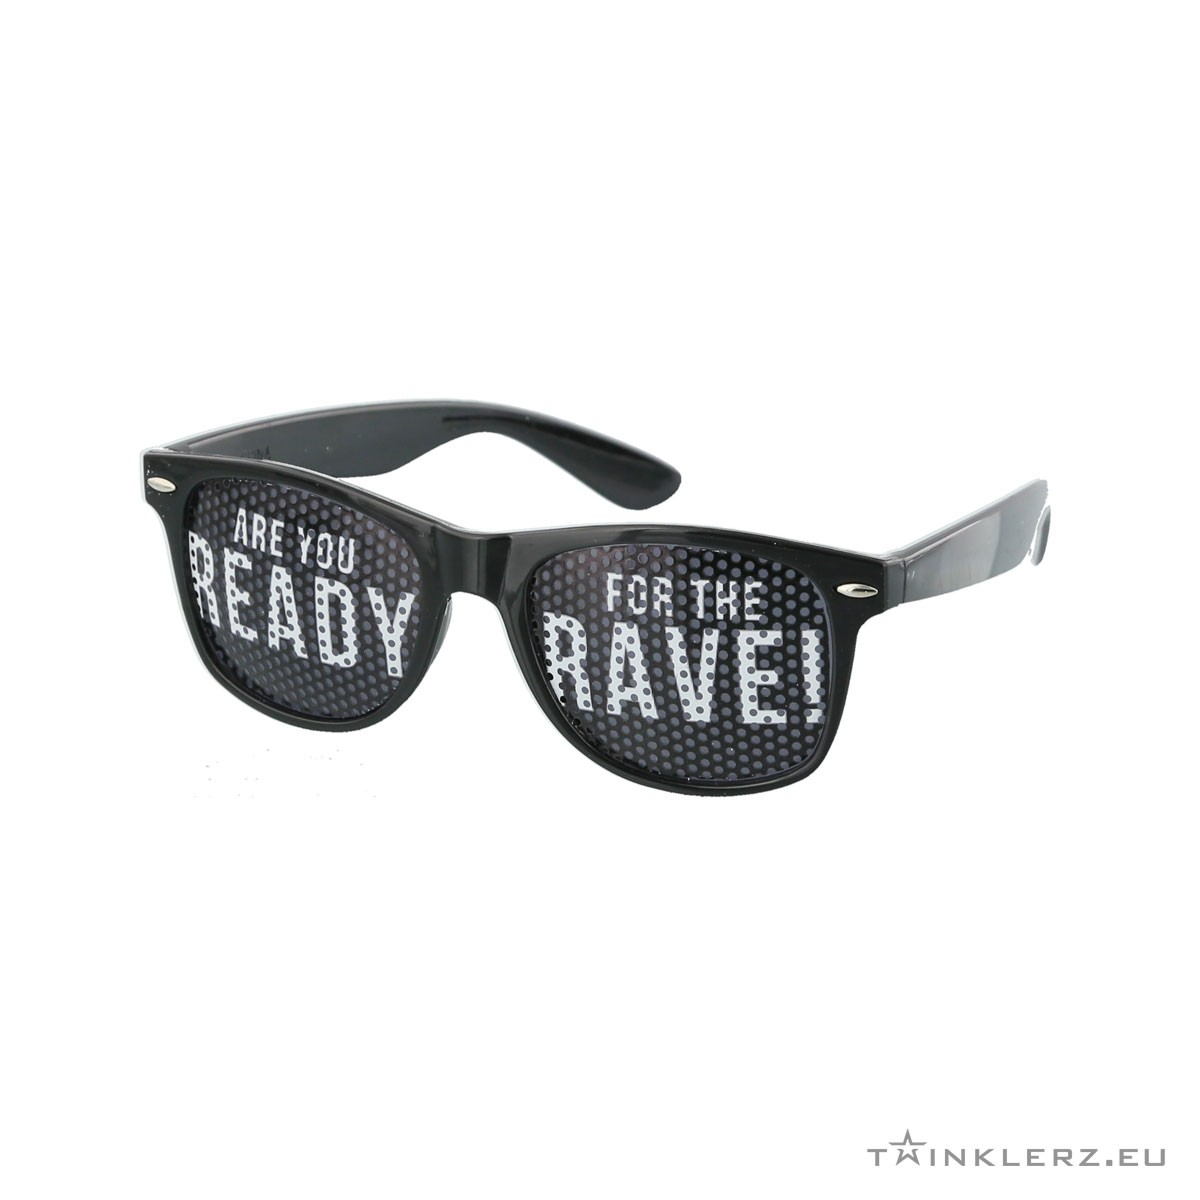 A-lusion pinhole sunglasses black - Are you ready for the Rave!